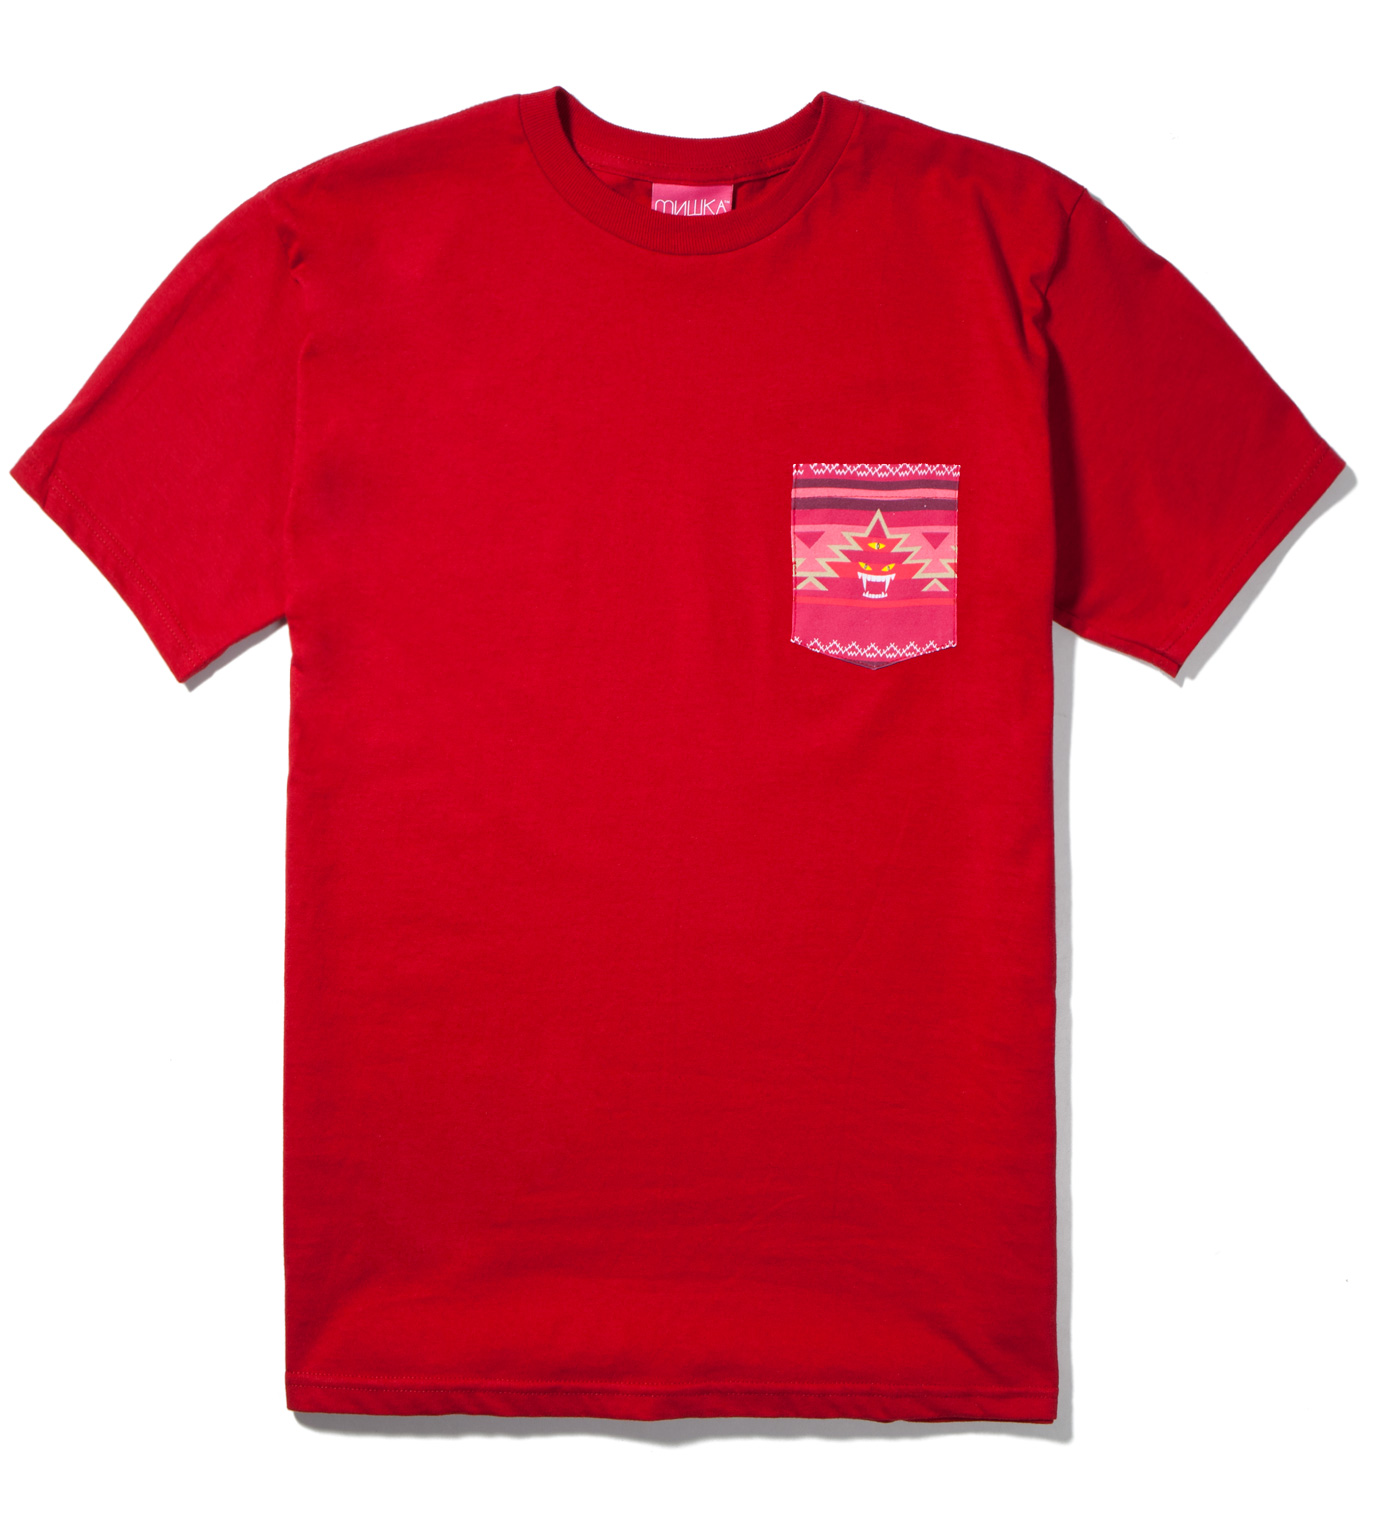 Mishka Cardinal Vision Quest Pocket T-Shirt